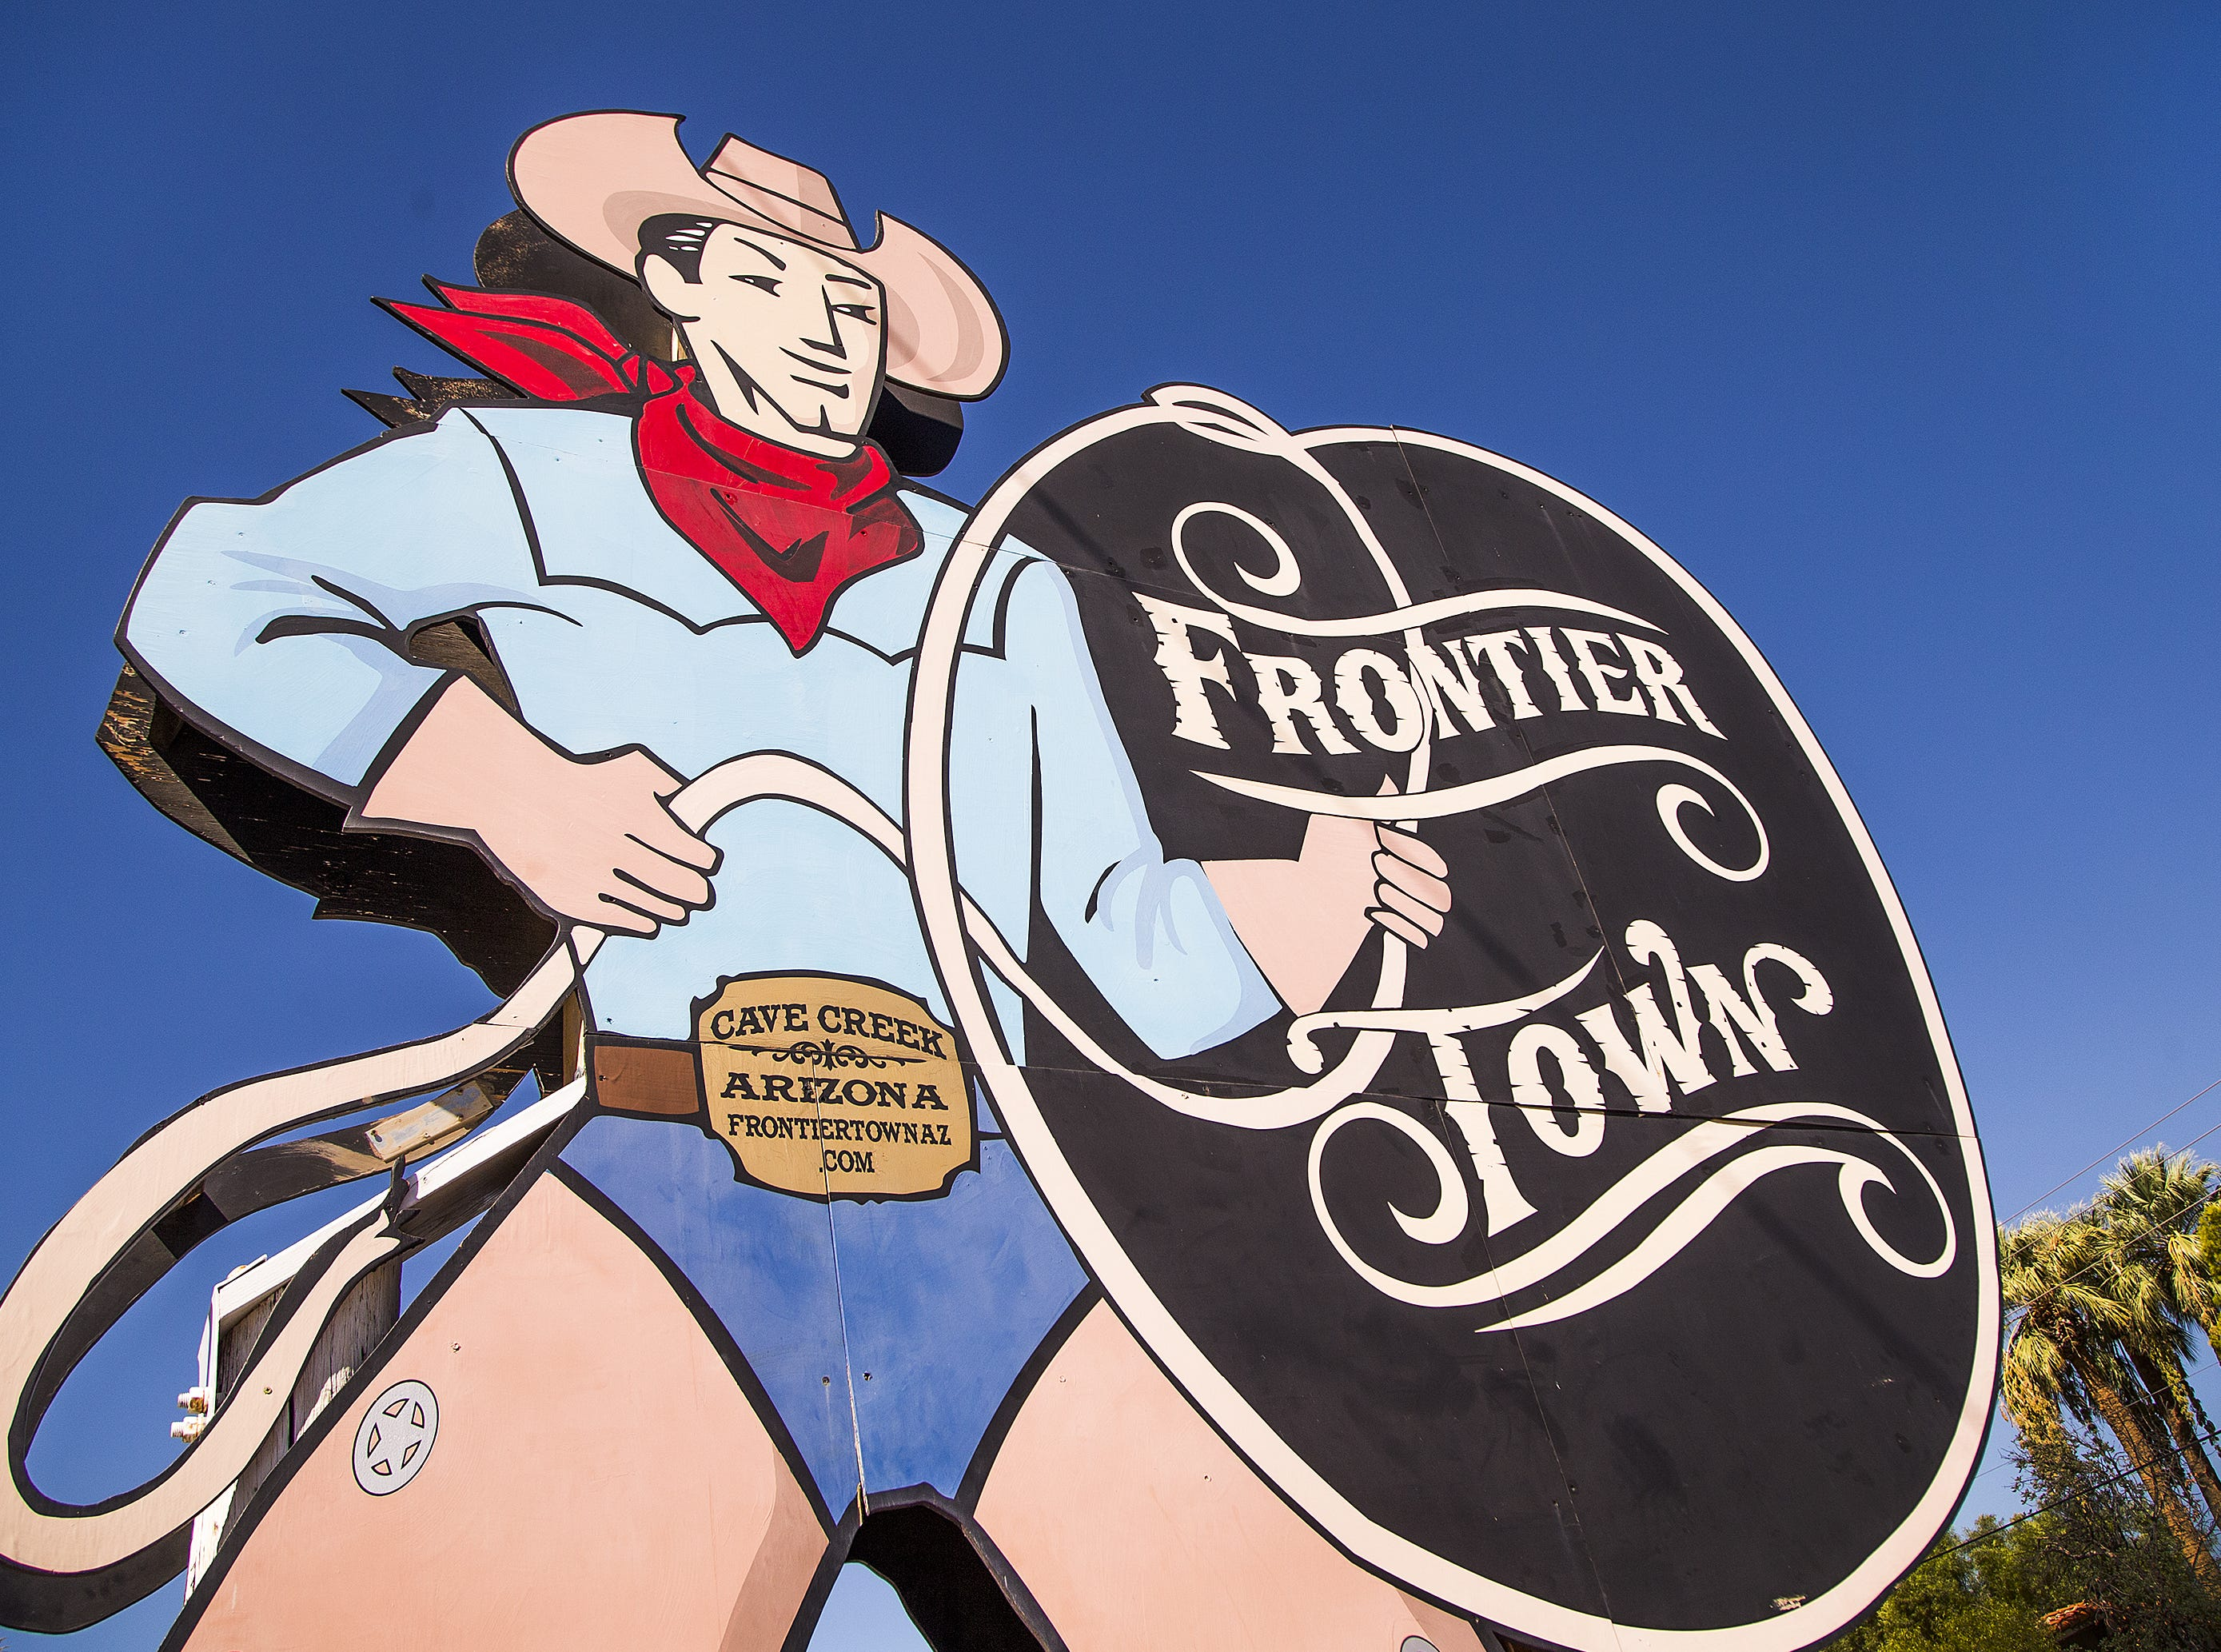 The sign at Frontier Town in Cave Creek, Tuesday, Oct. 9, 2018.